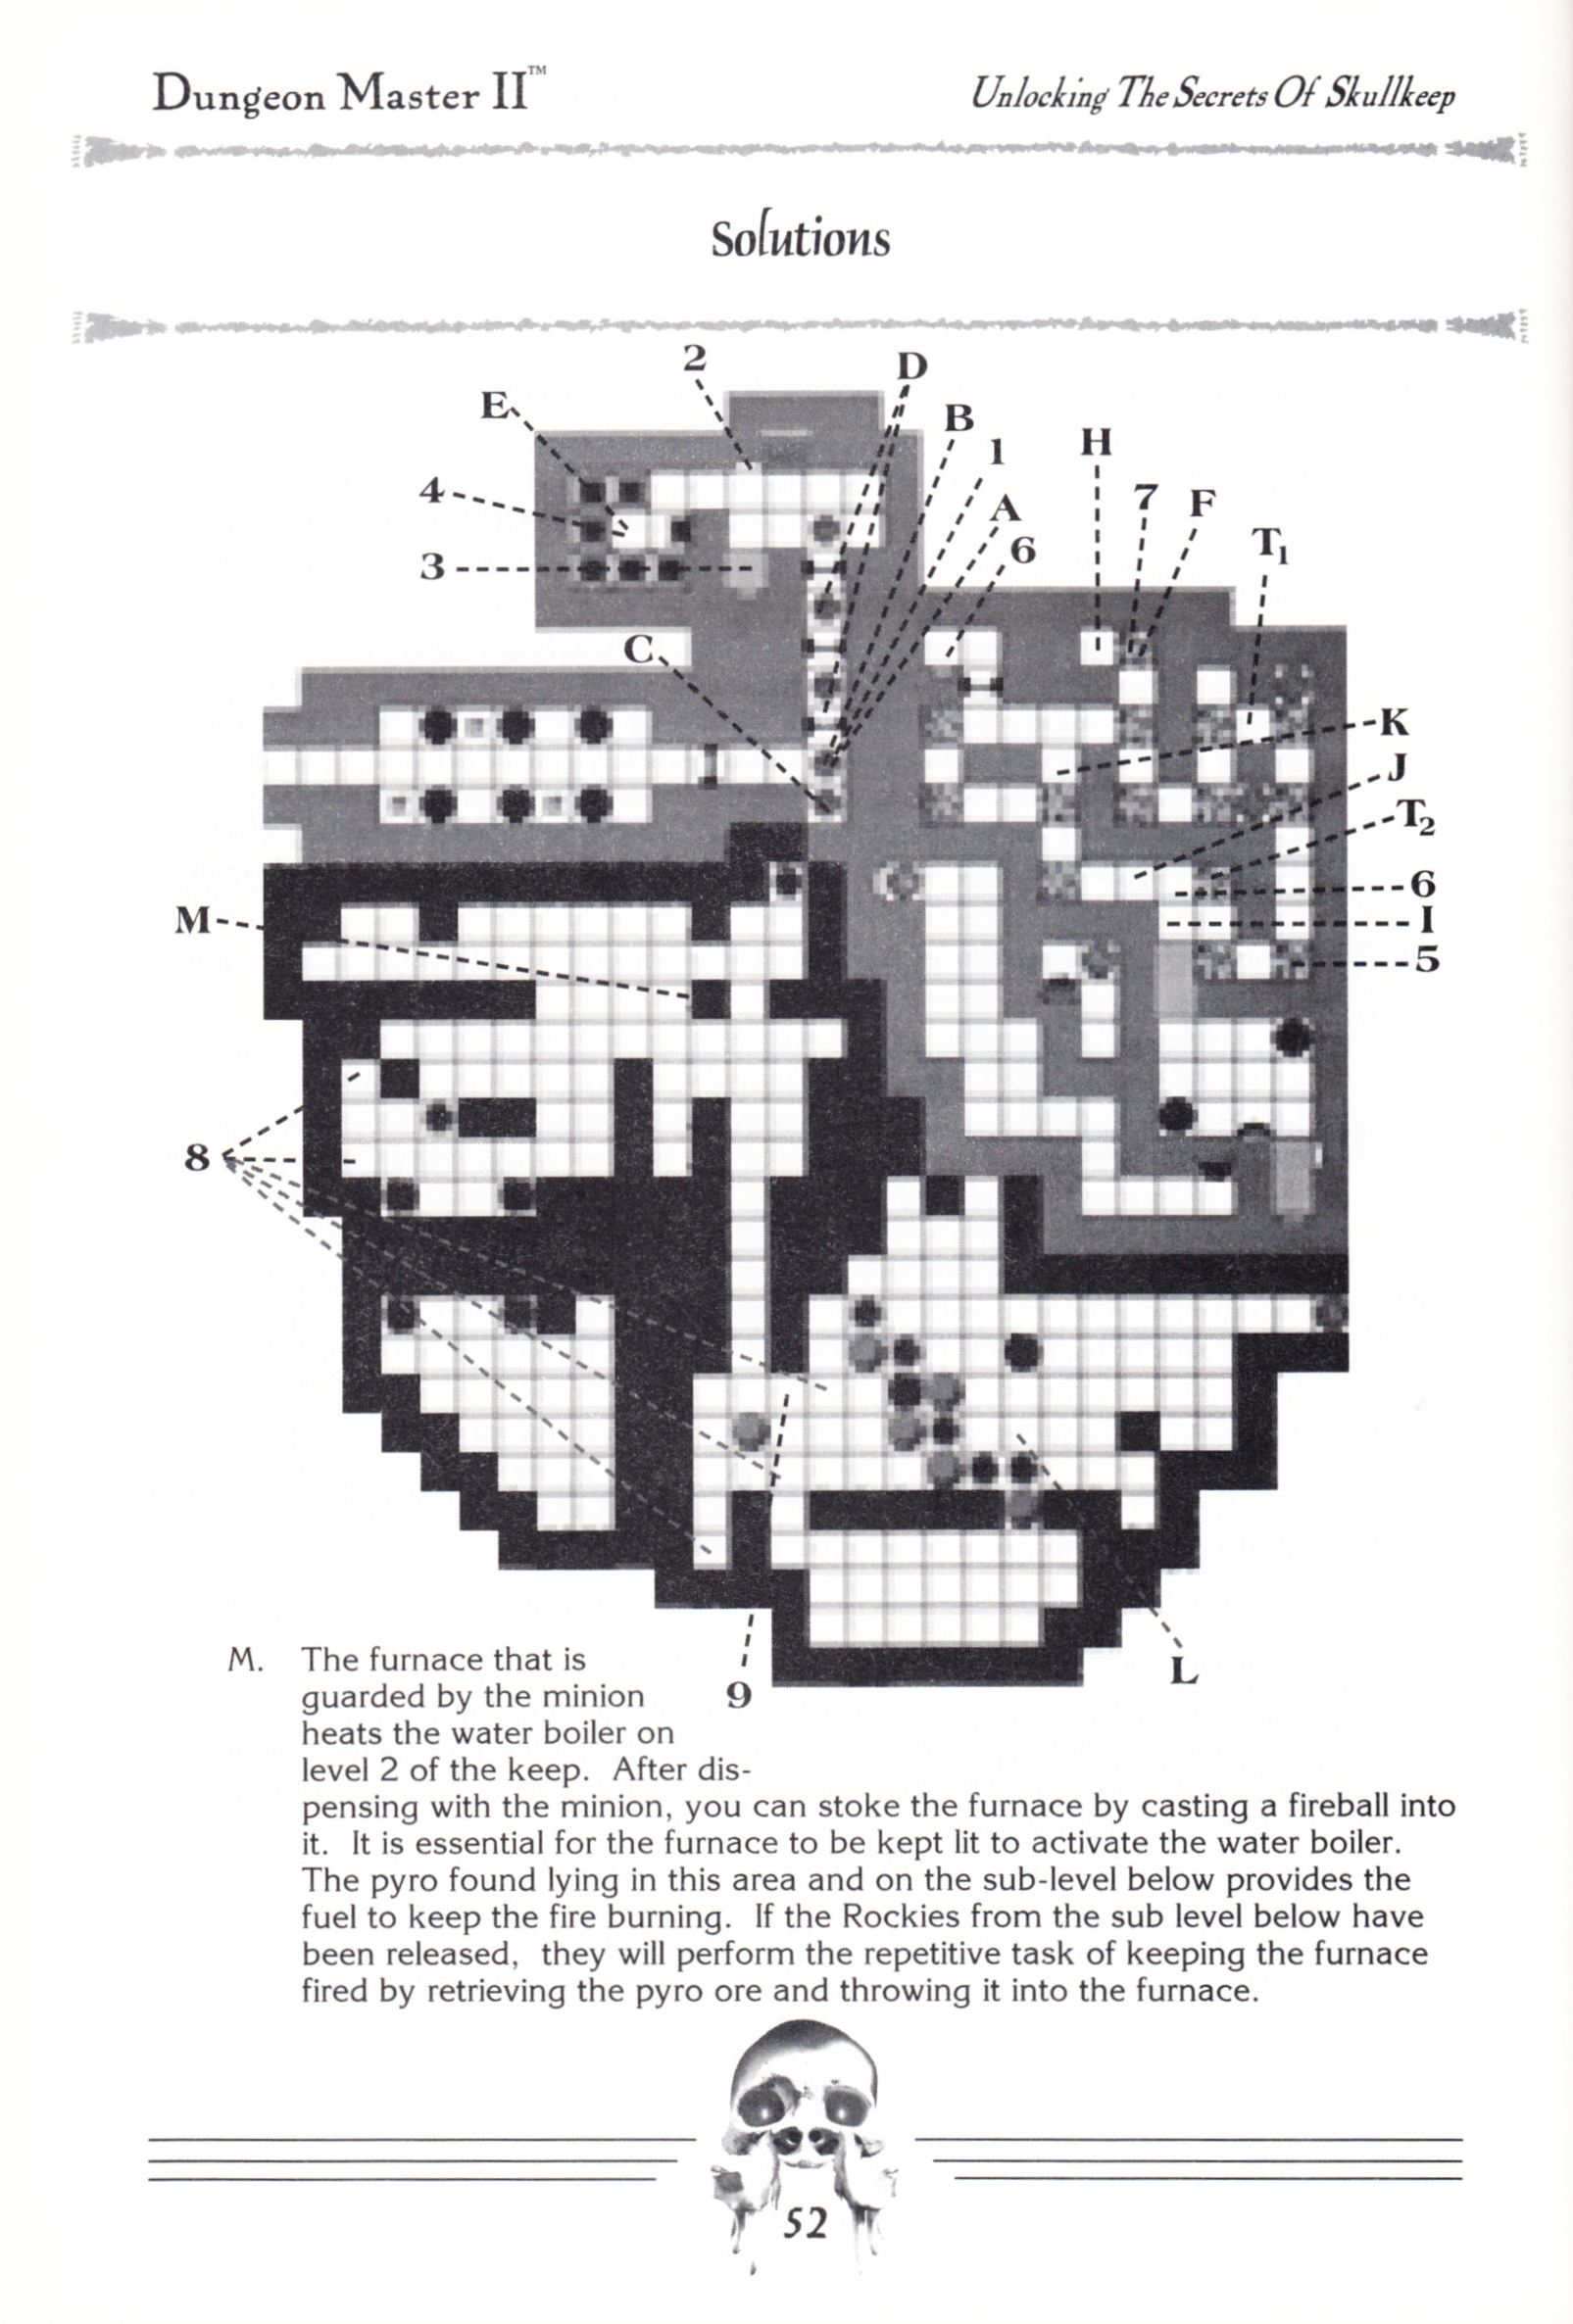 Hint Book - Dungeon Master II Clue Book - US - Page 054 - Scan